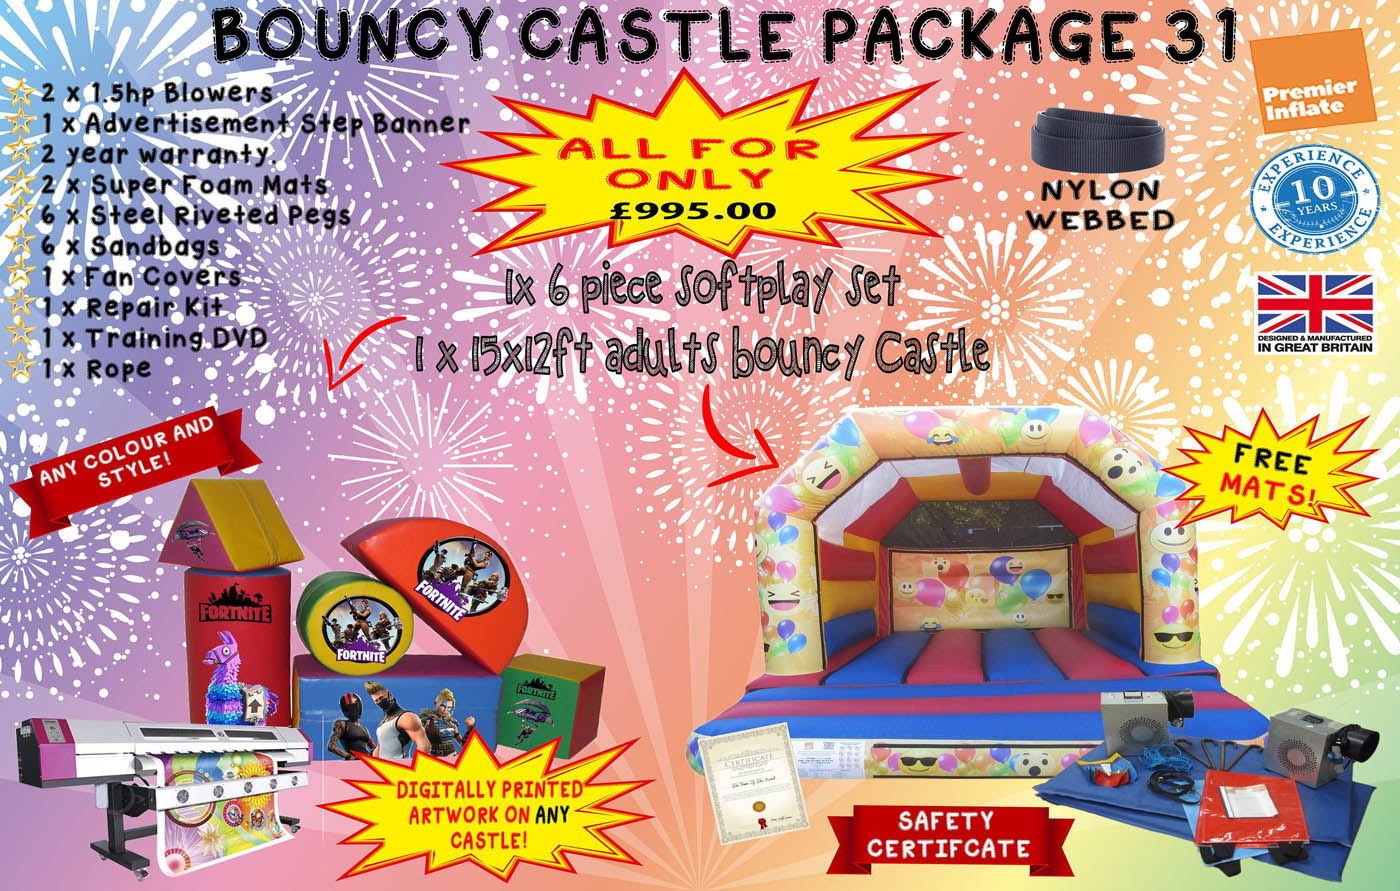 Inflatable-bouncy-castle-package-31-compressor